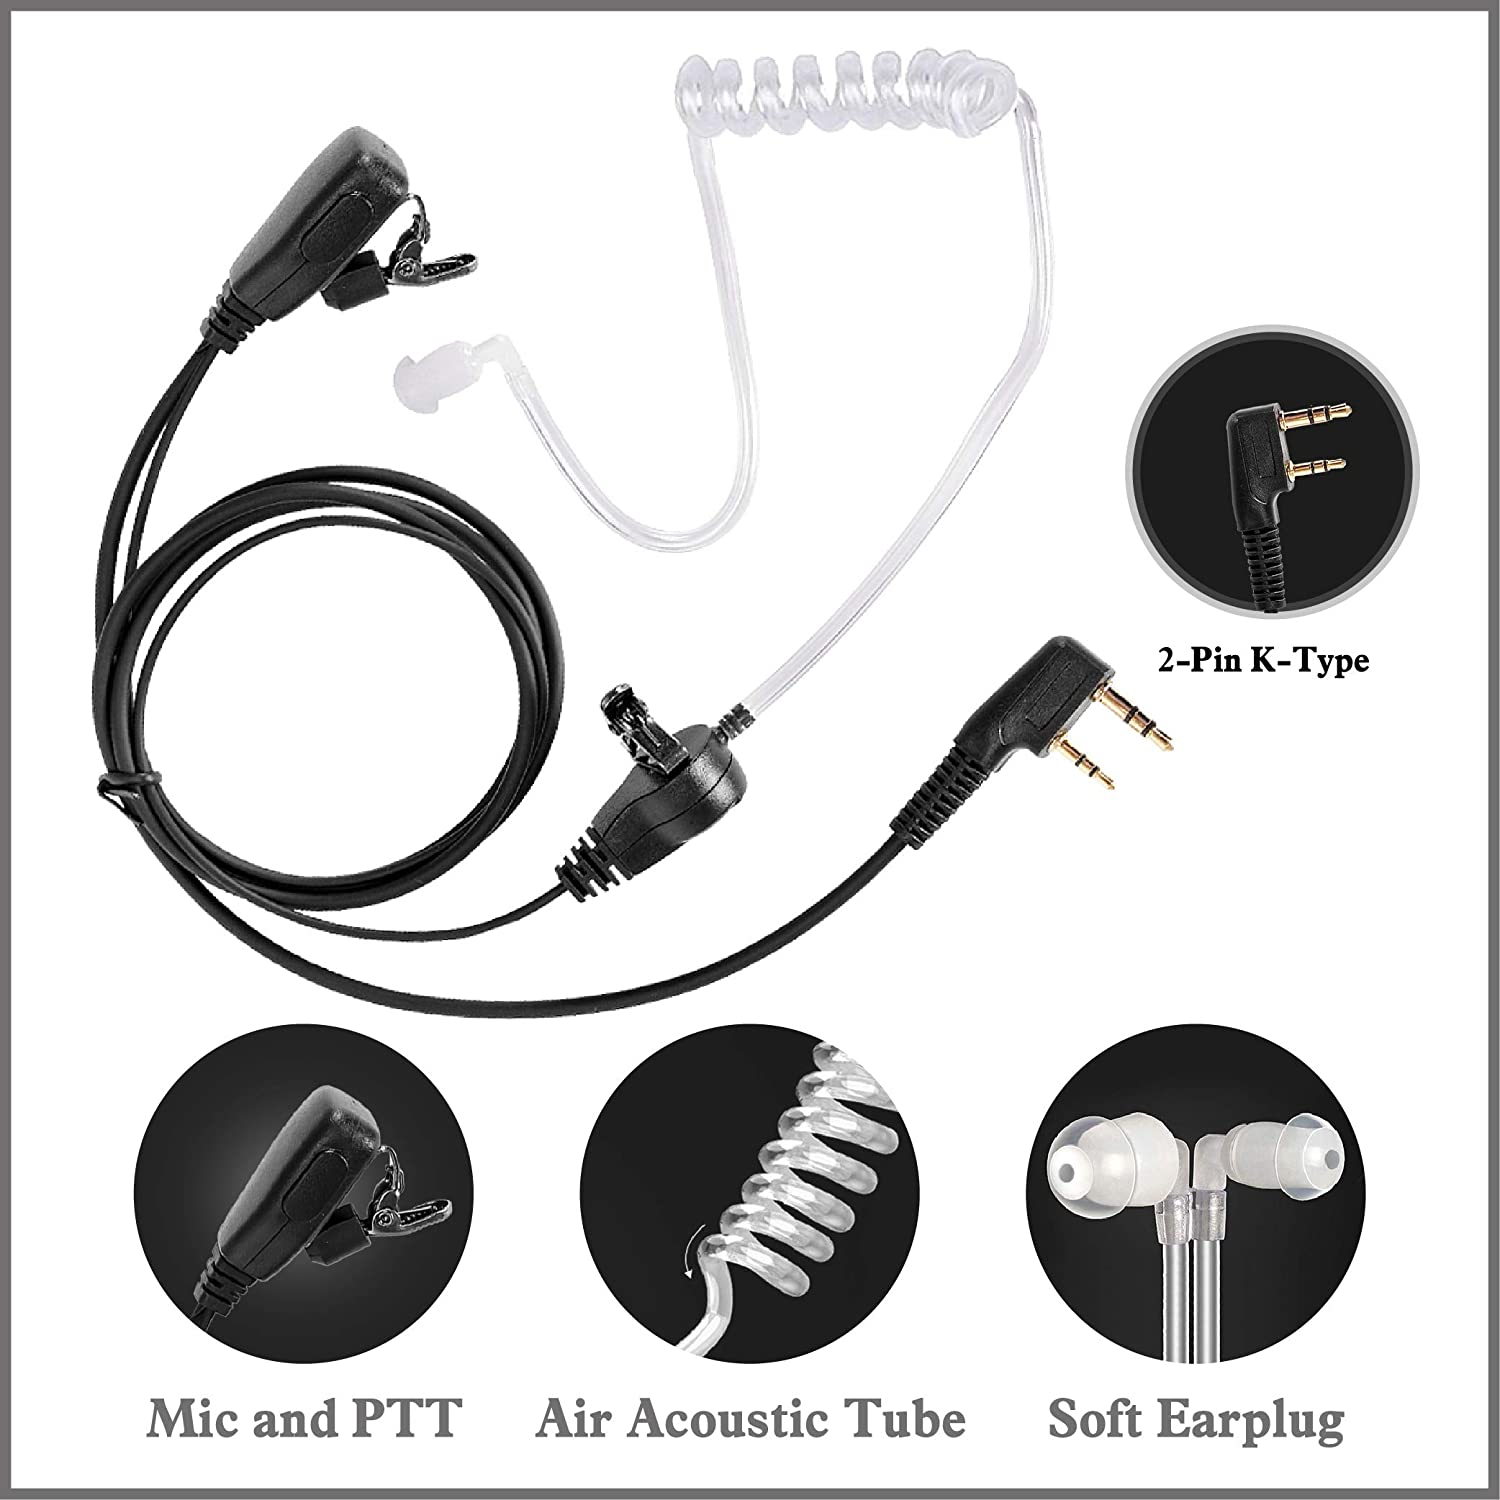 Covert Air Acoustic Headset with PTT for 2-Pin K-Type Walkie Talkies Sanzuco Coil Tube Audio Kit with Basic Earbuds for Retevis Kenwood BaoFeng Two-Way Radios 2 Pairs